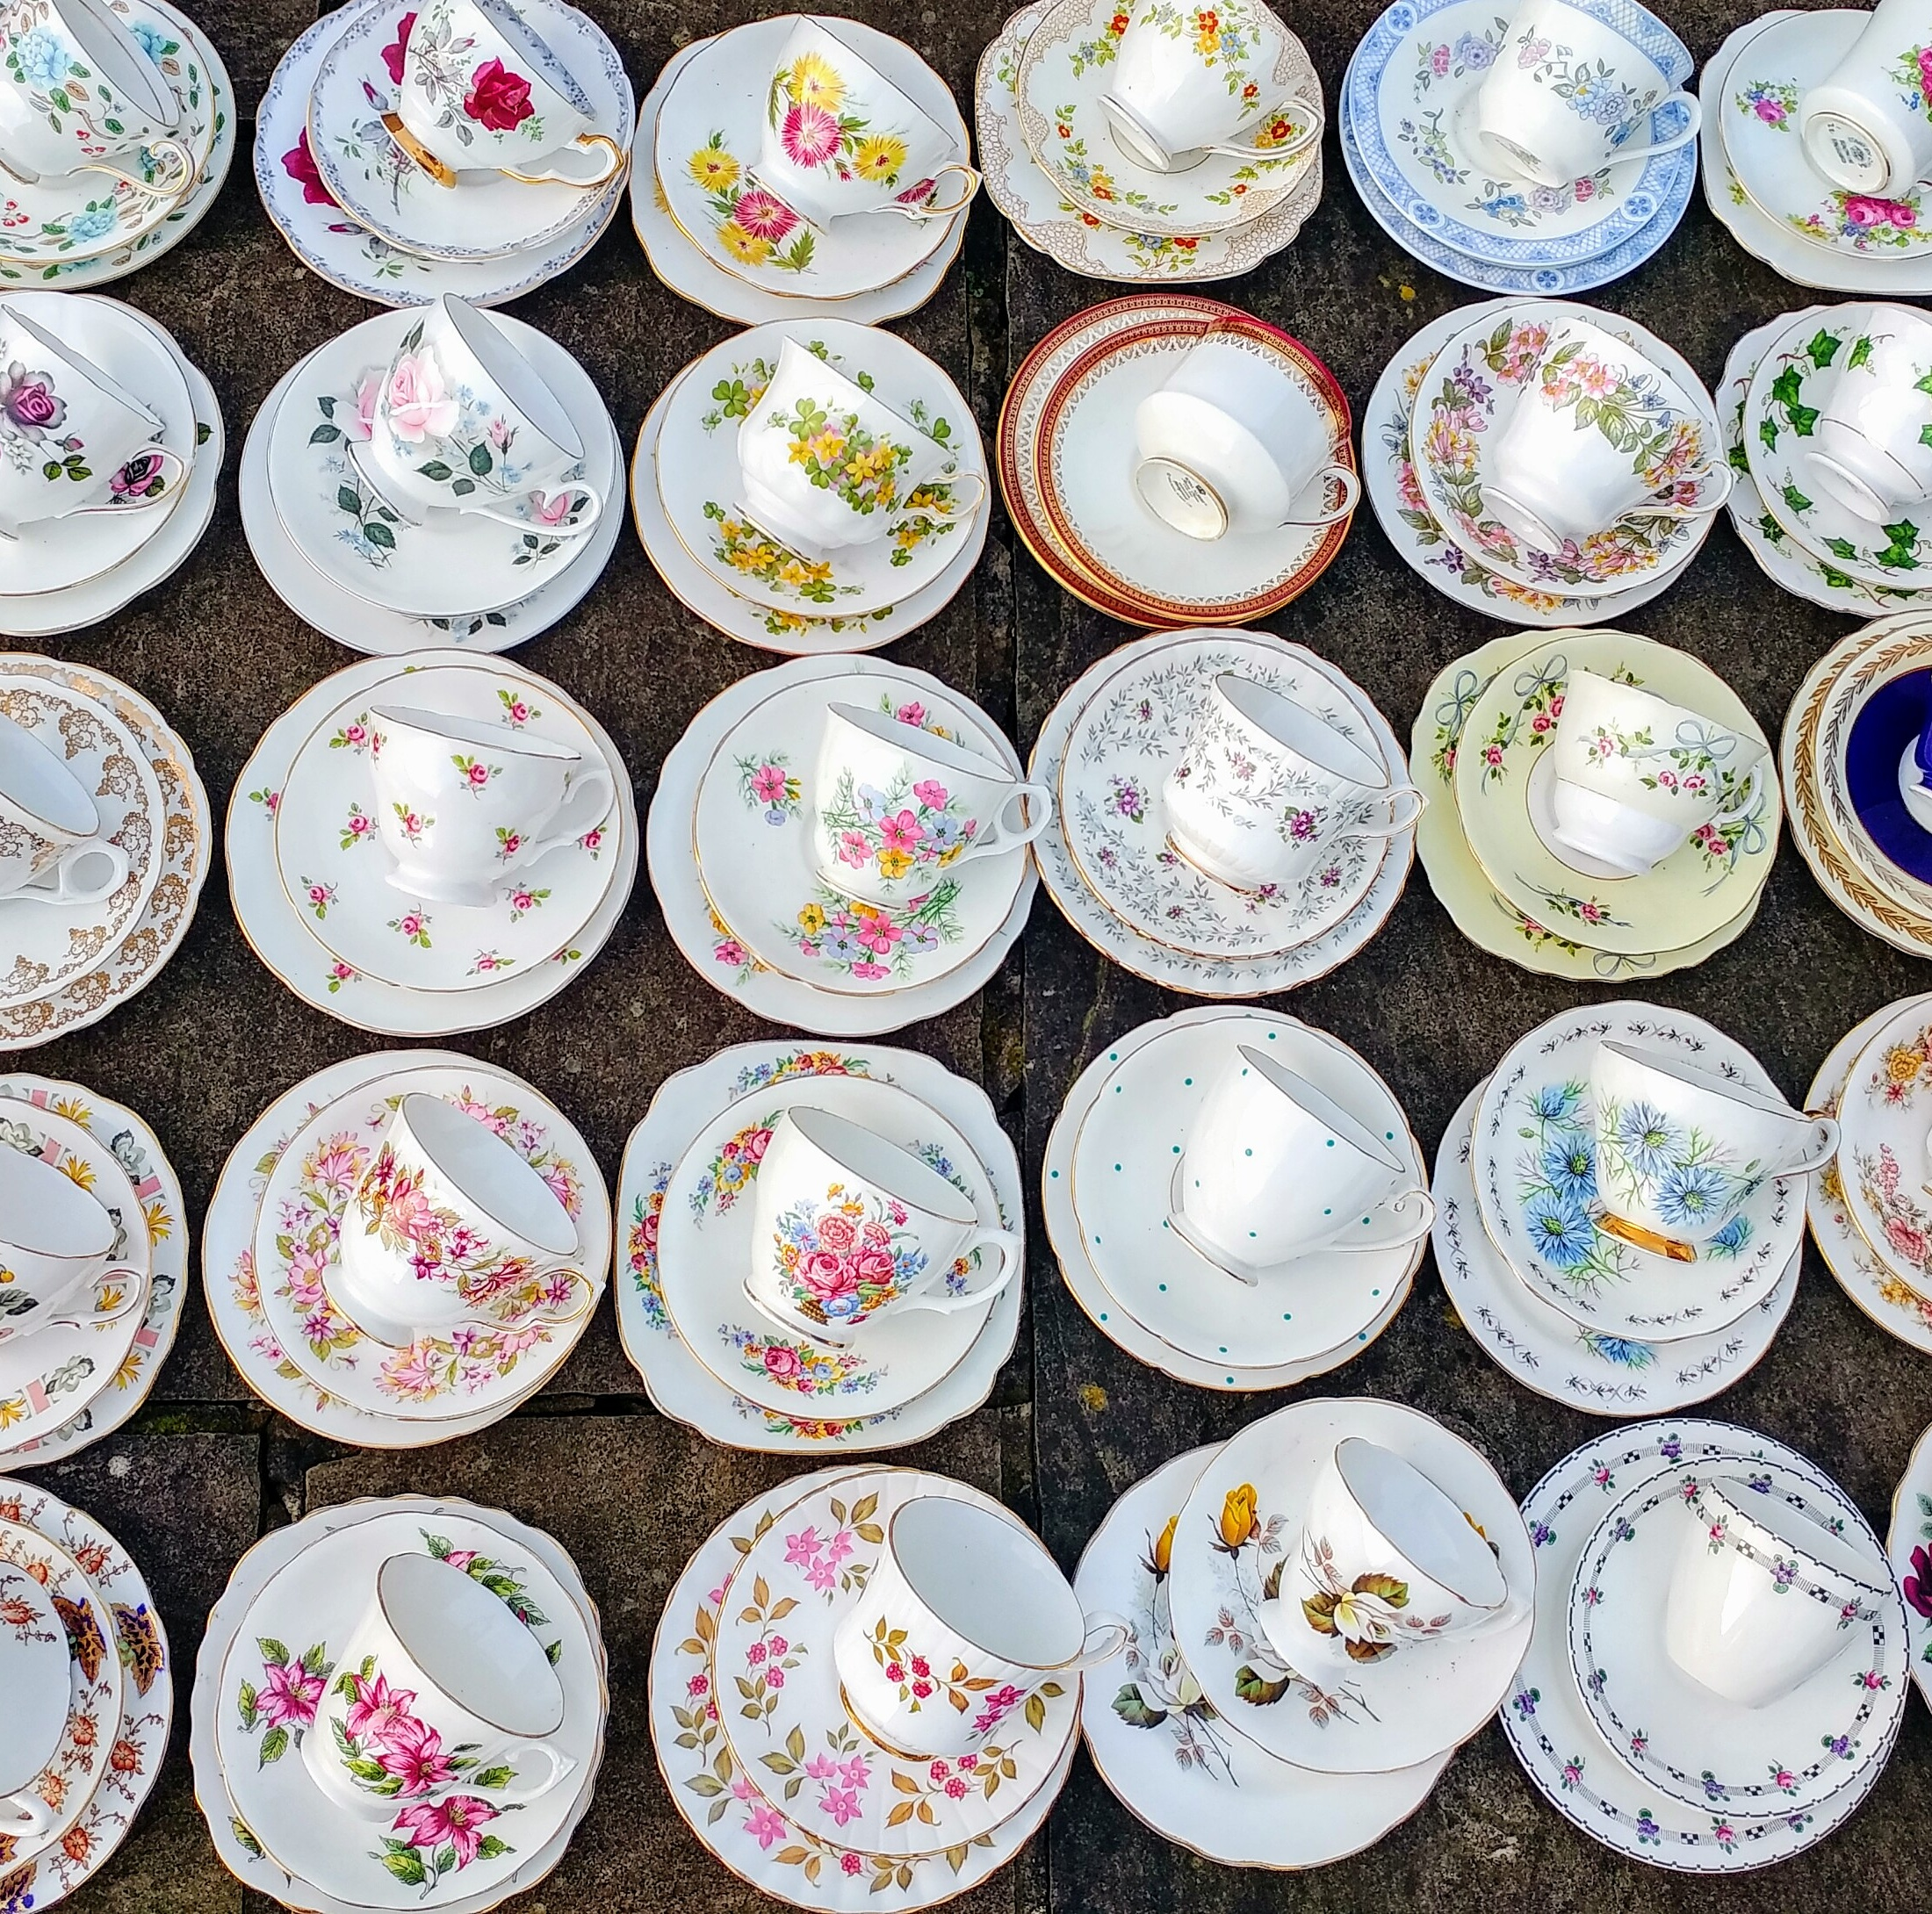 Job Lot of 150 (50 pcs) Vintage Mismatched China Mix Tea Cups Saucers and Side Plate Trios Set Floral u2013 Tableware Mad Hatters Afternoon Tea Room Party ... & xxbritishvintagemarketJob Lot 50 Vintage Mismatched China Mix Cups ...